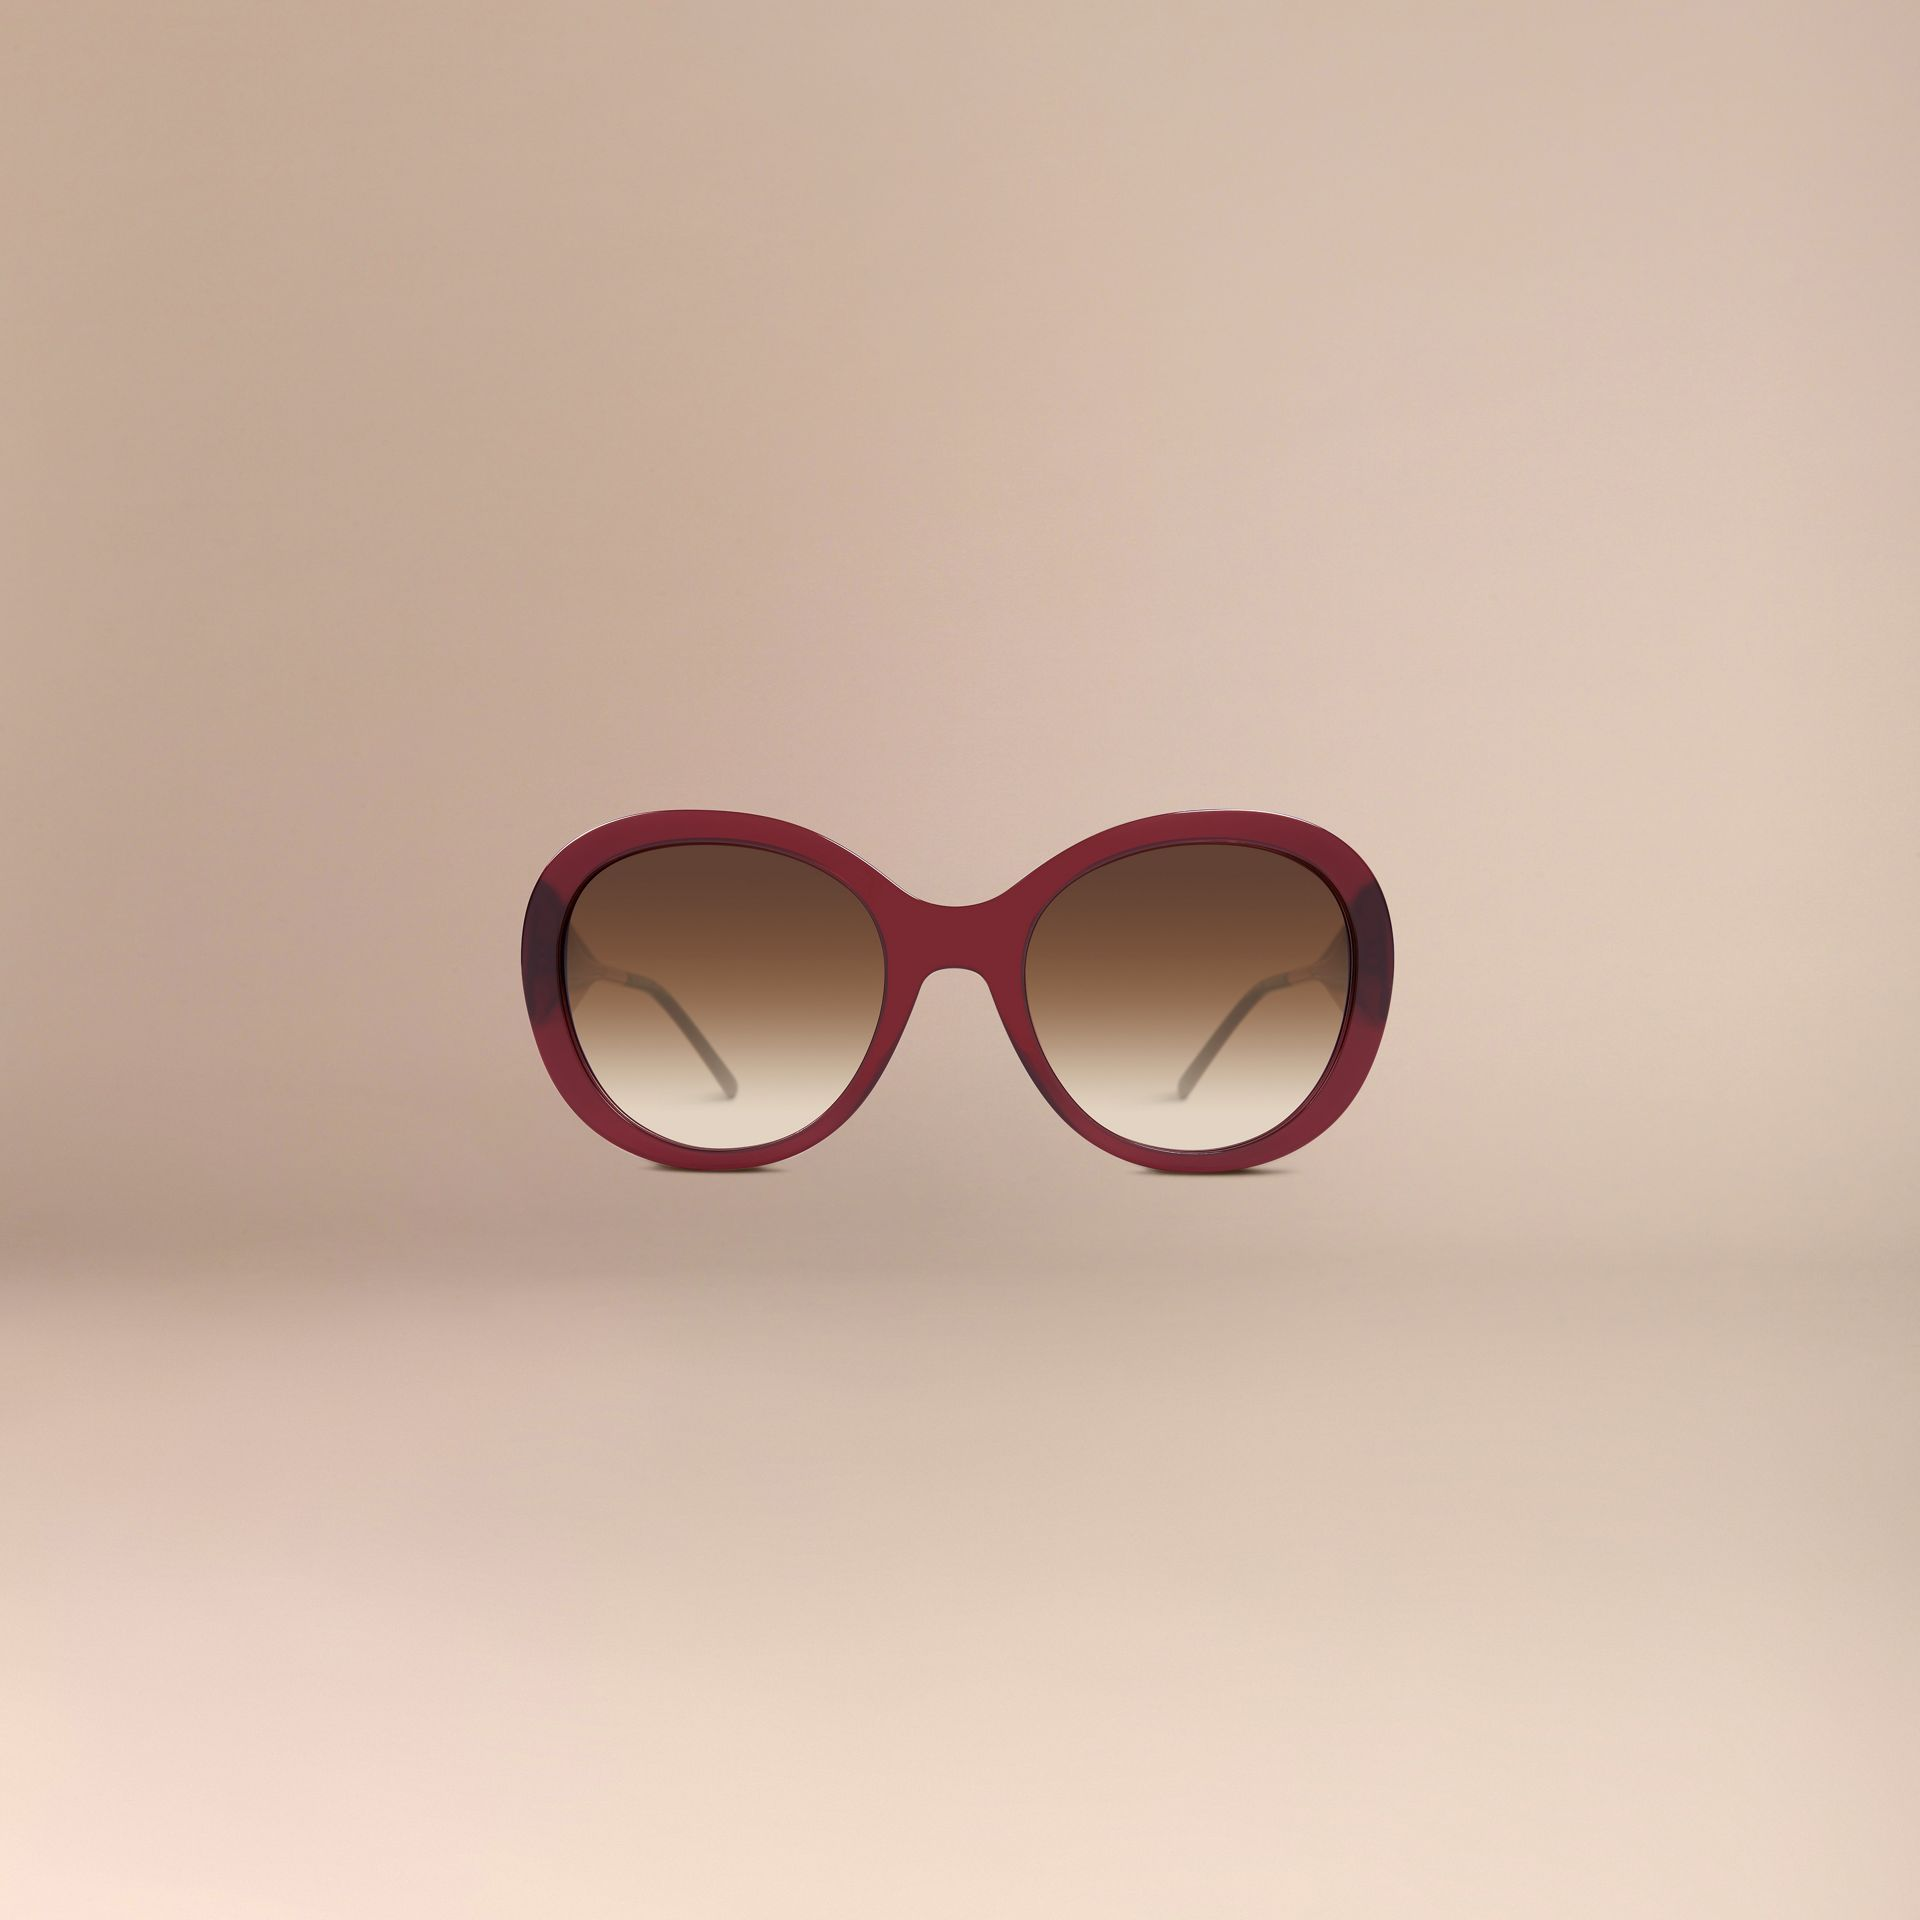 Oxblood Oversize Round Frame Sunglasses Oxblood - gallery image 3